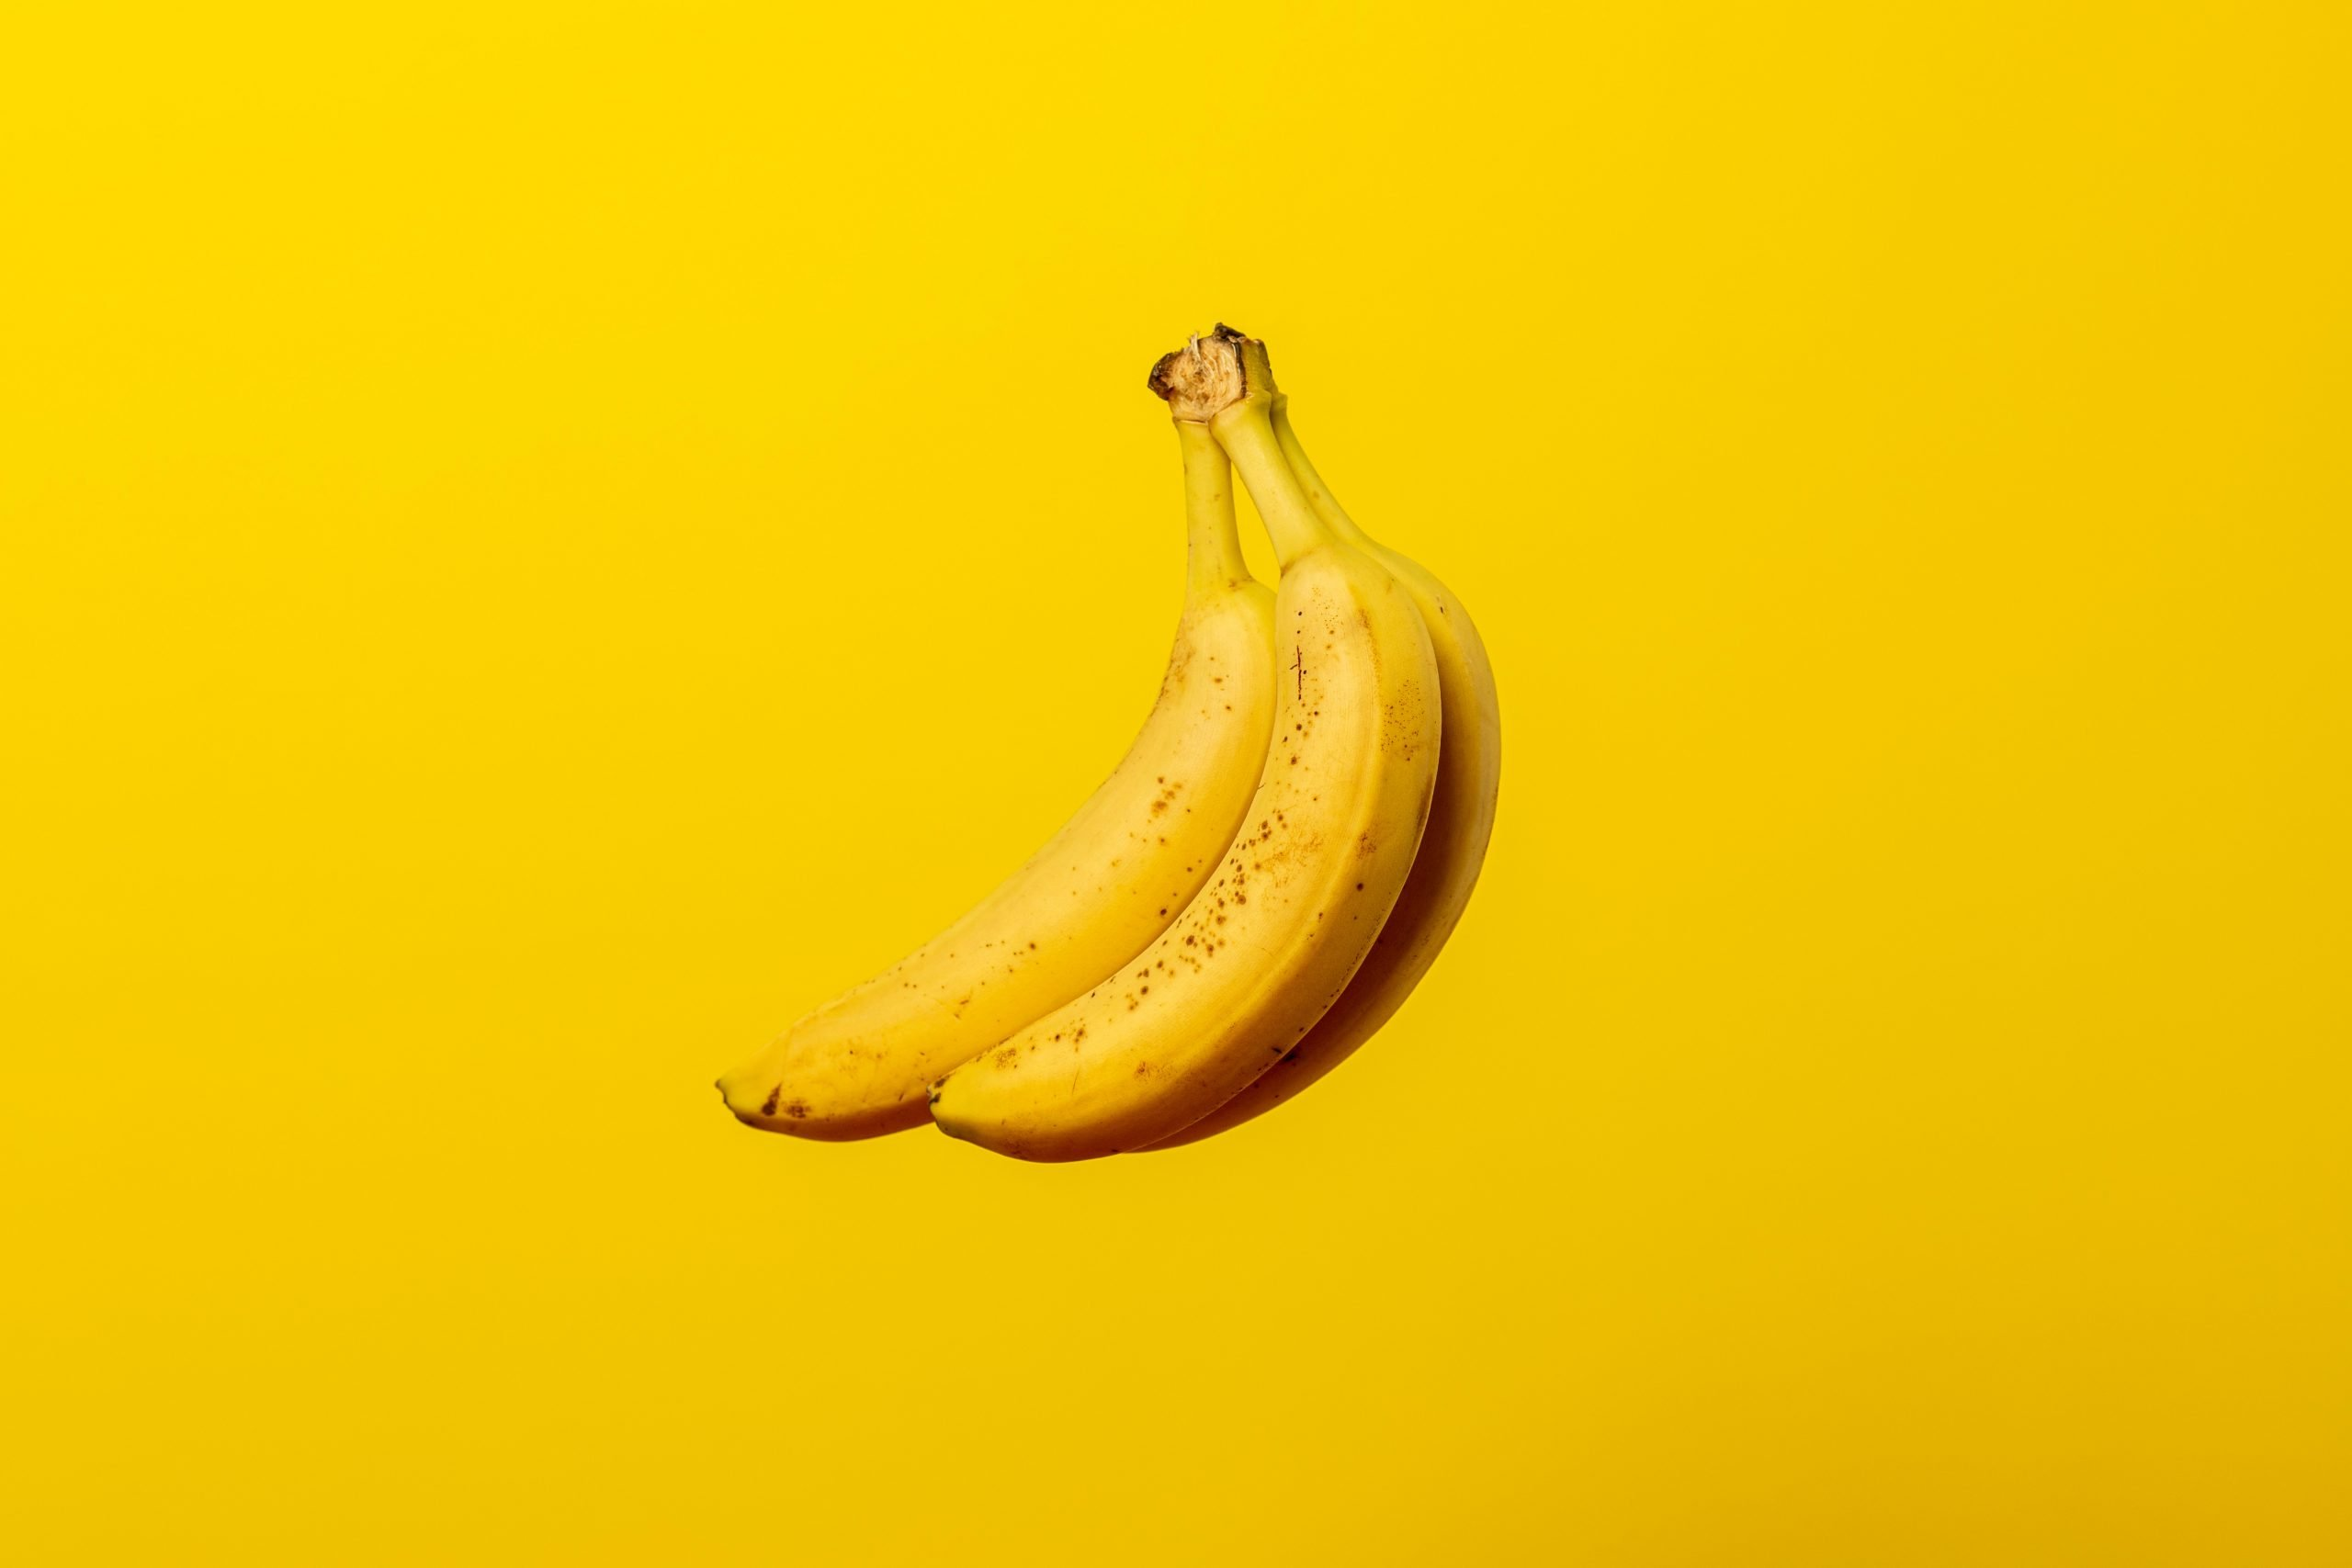 how much dna do we share with bananas